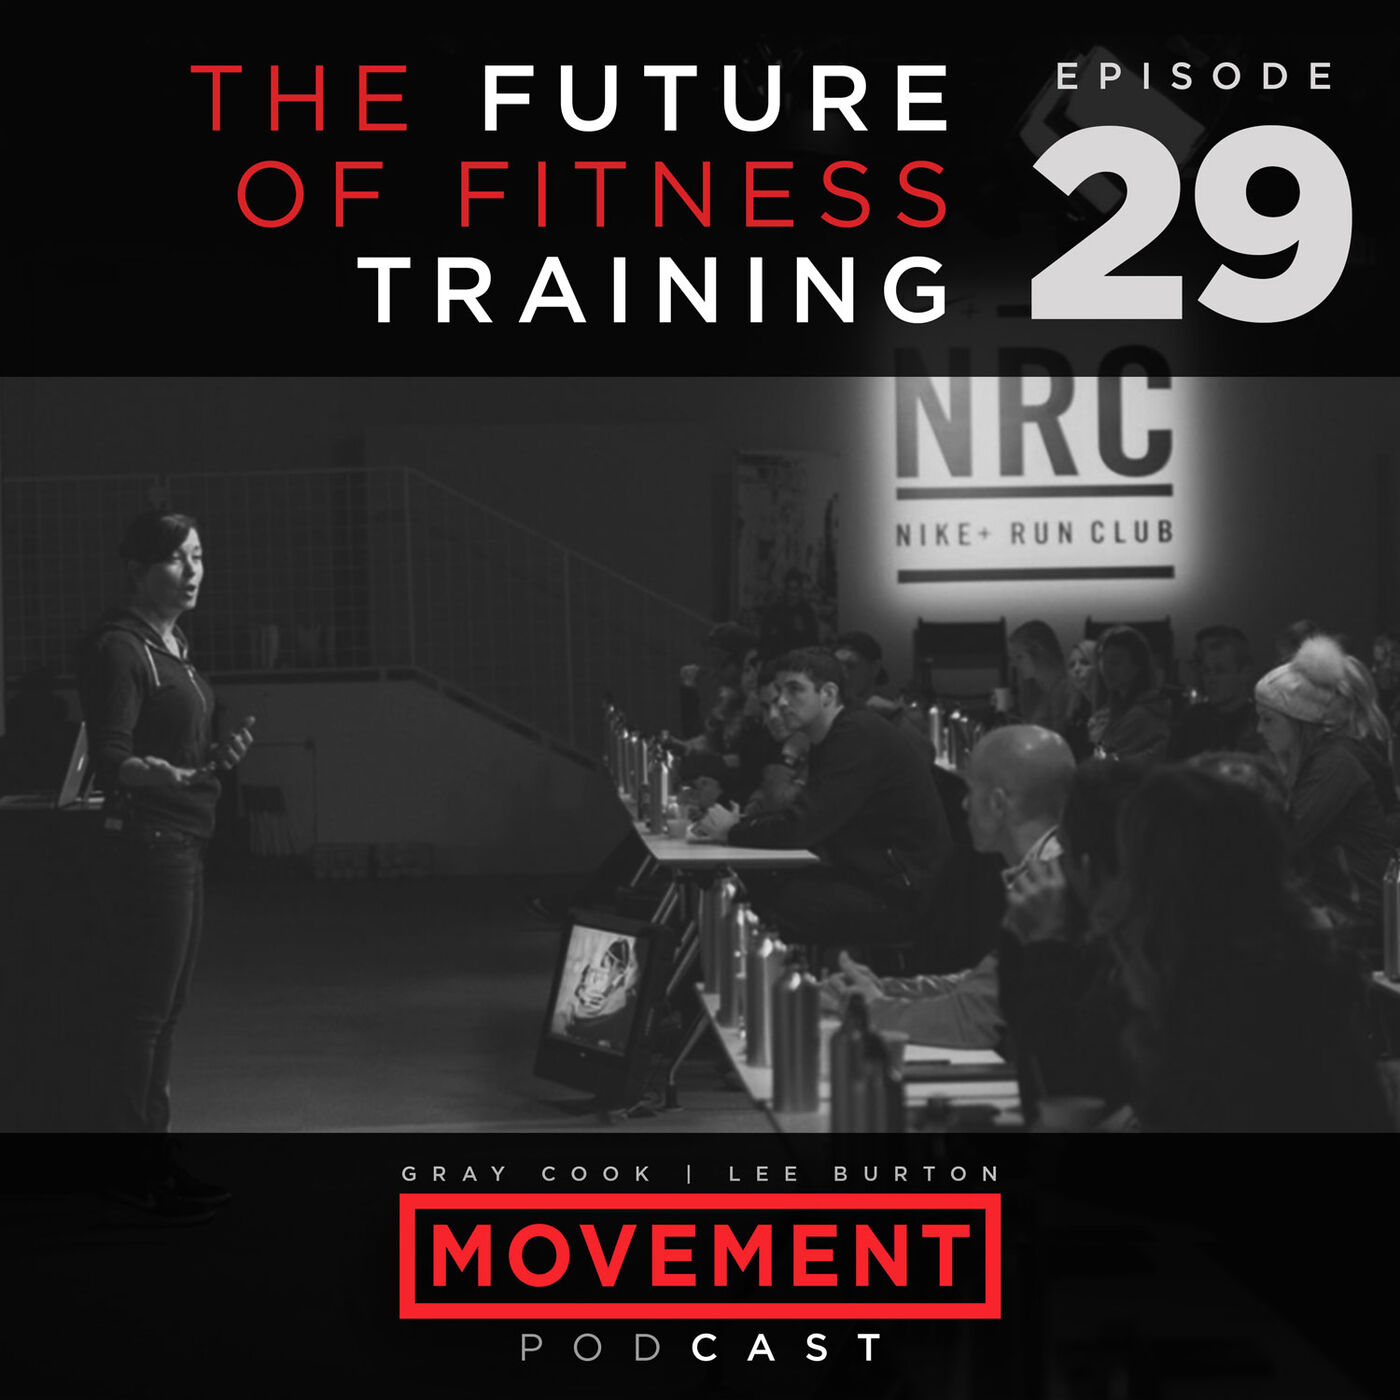 The Future of Fitness Training